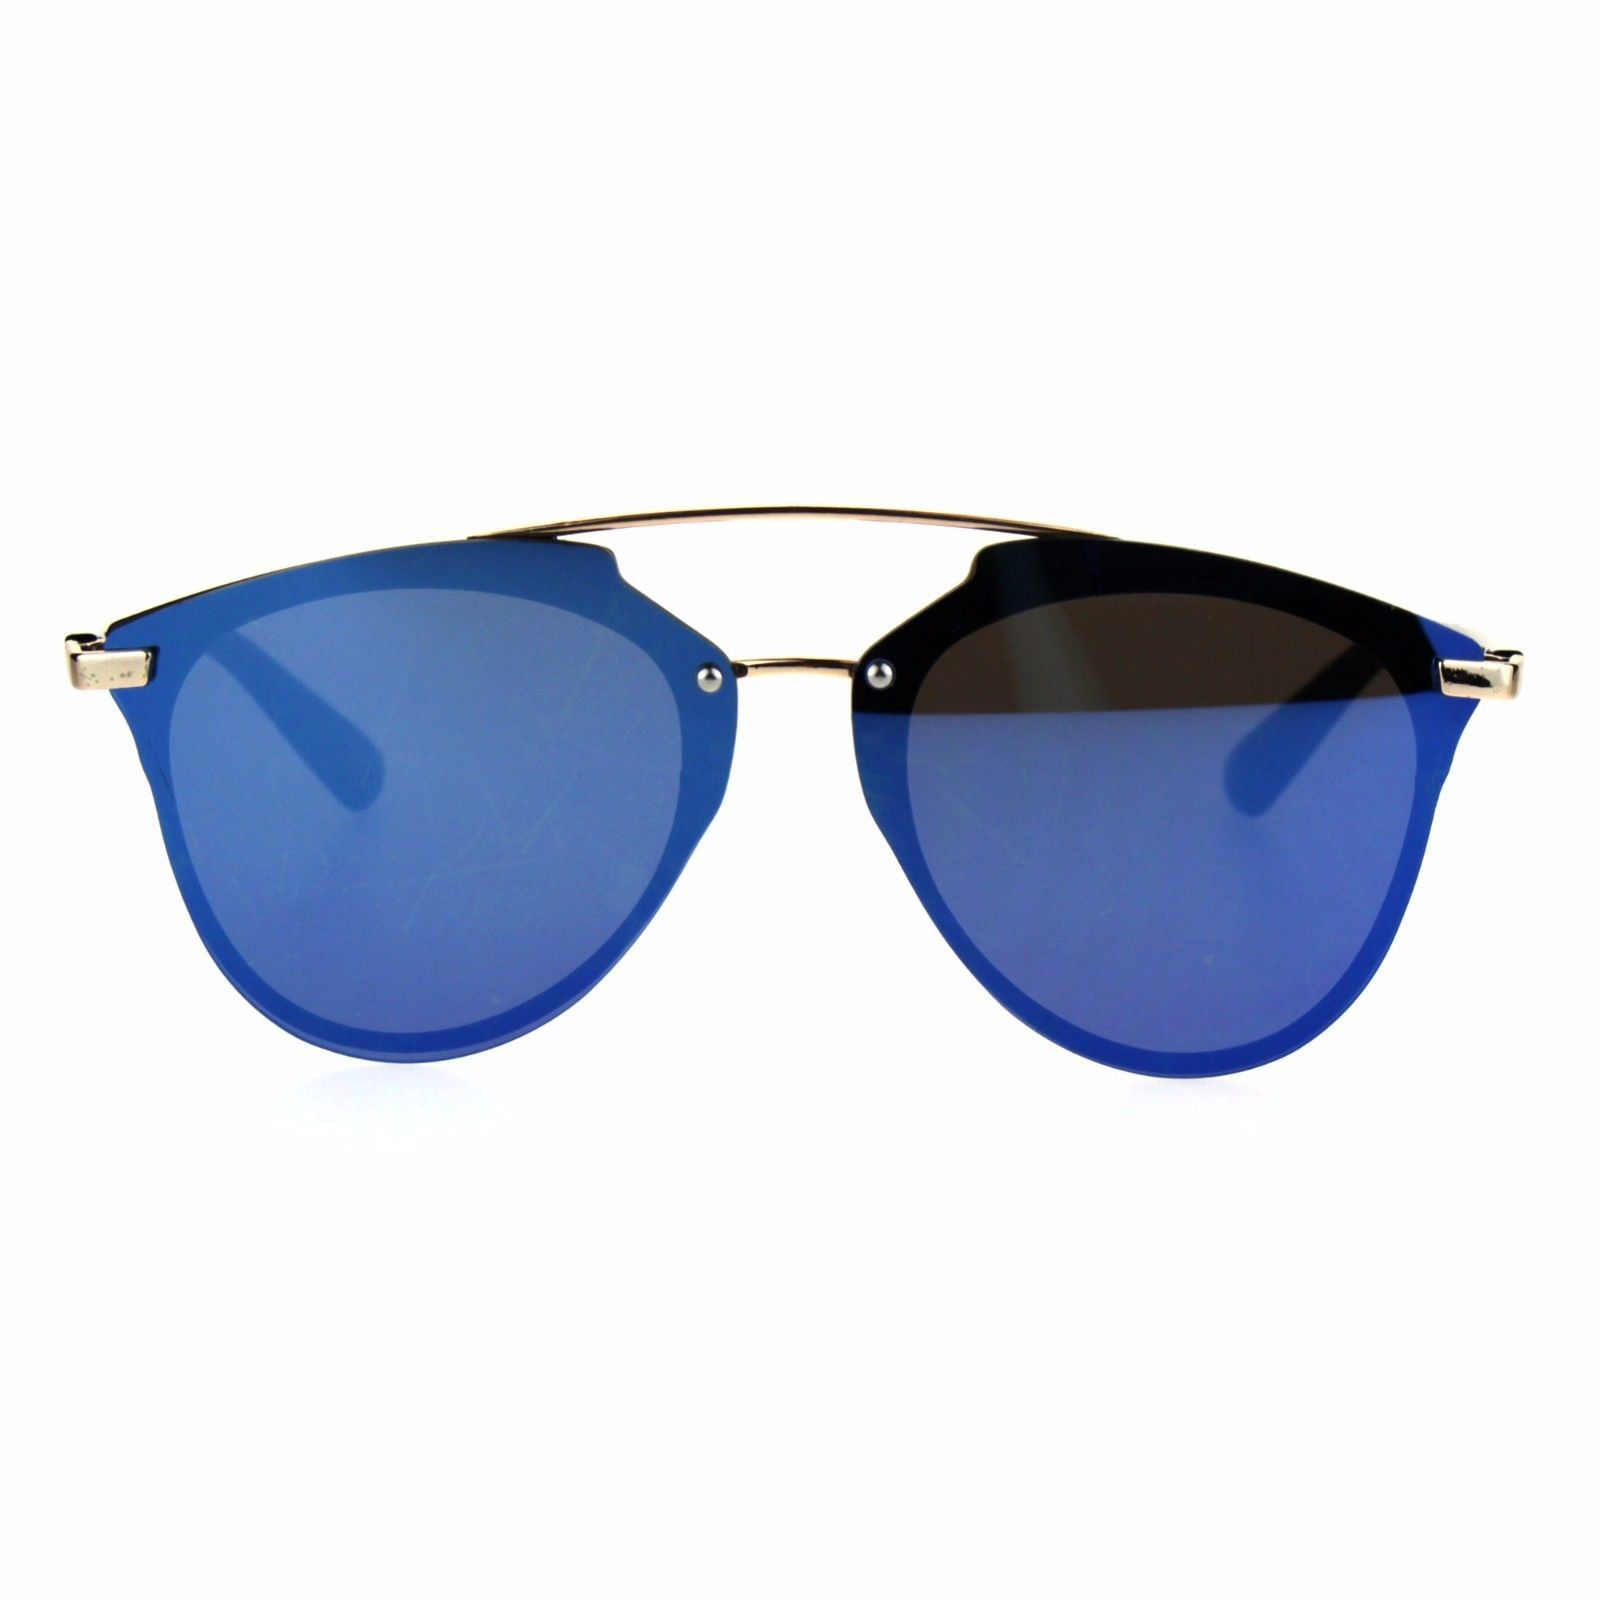 7ecec7e2d81 Unisex Color Mirror Flat Panel Horned Hipster Rimless Sunglasses